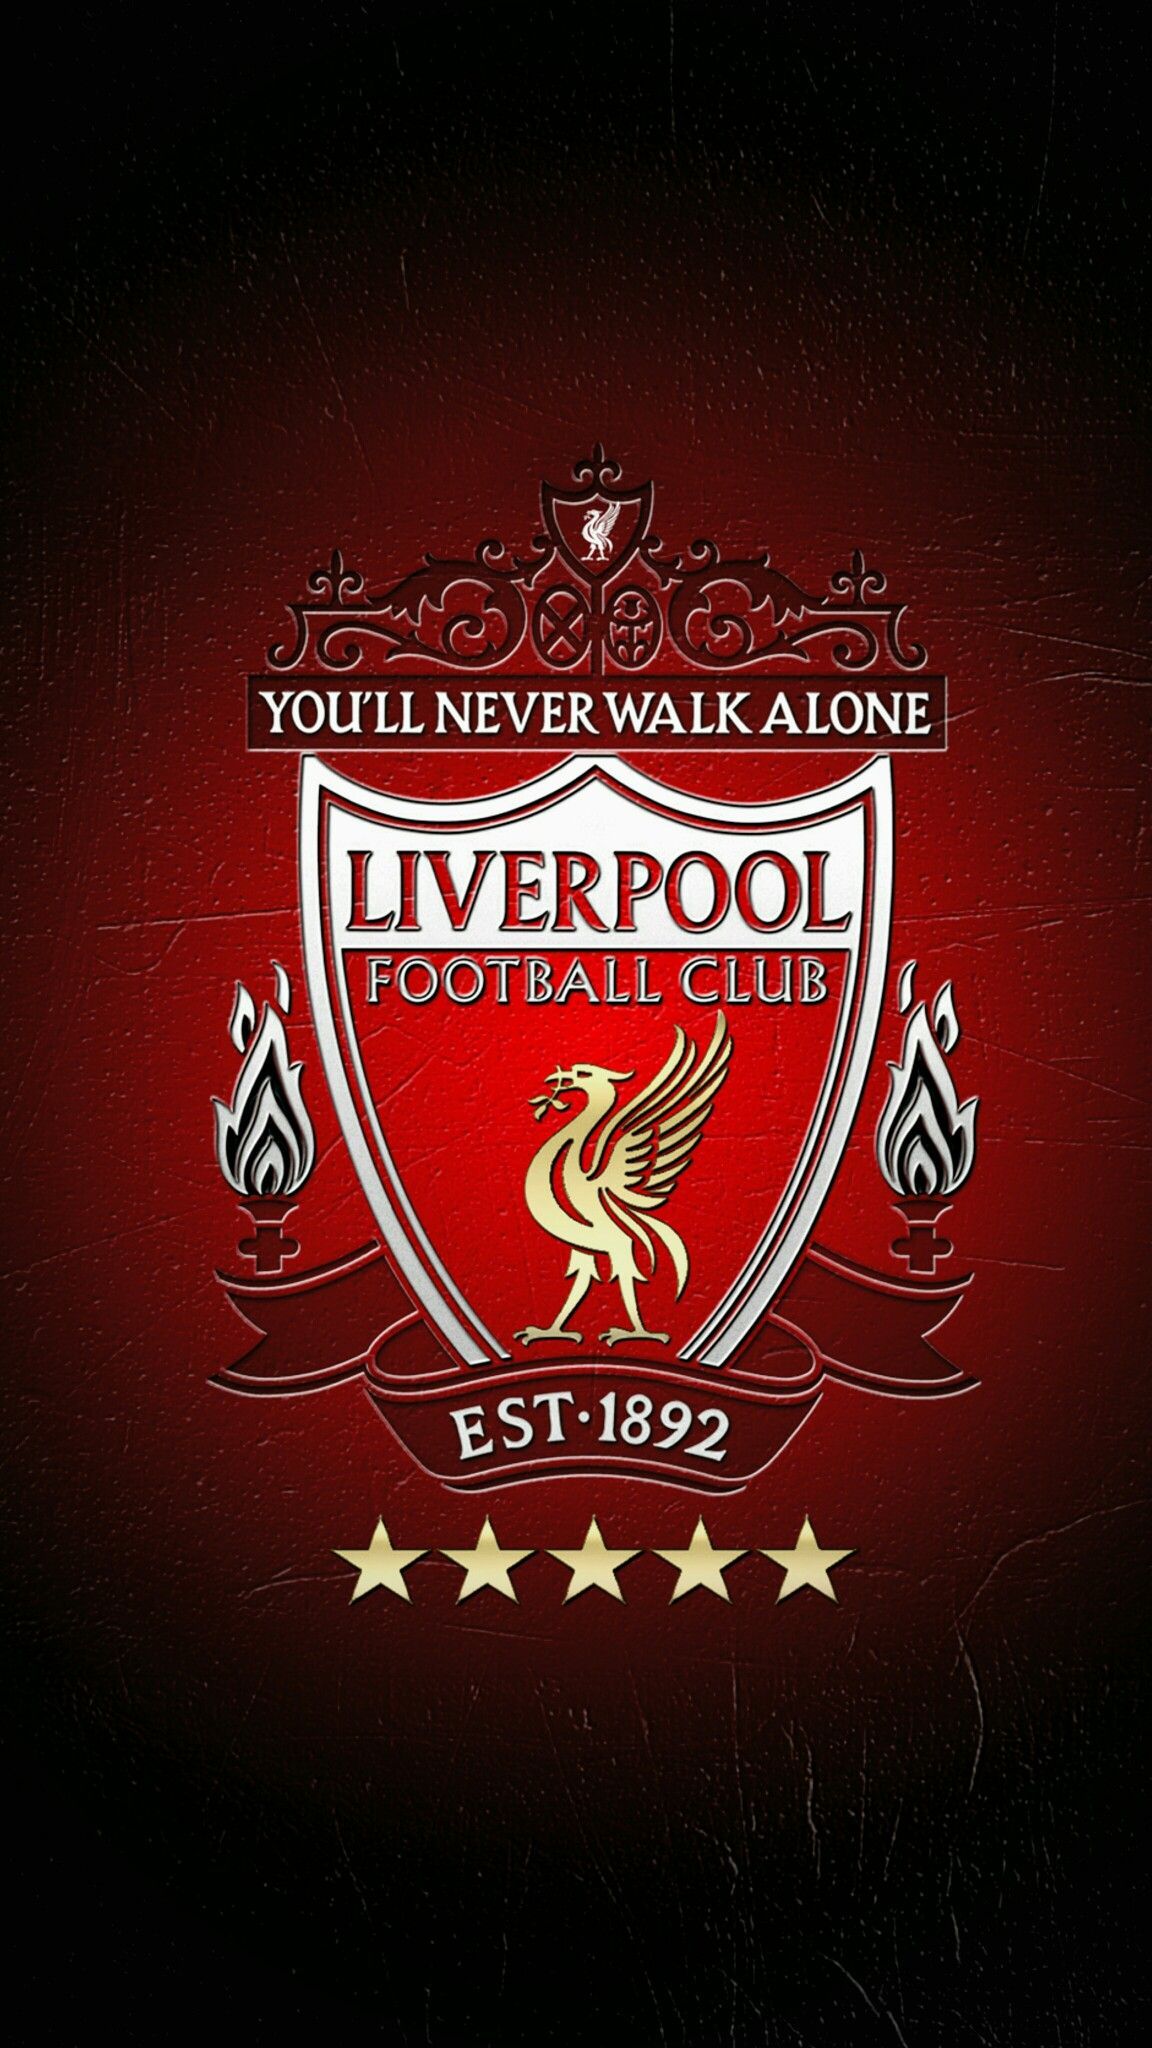 Liverpool Fc Badge Svg - Look for Designs